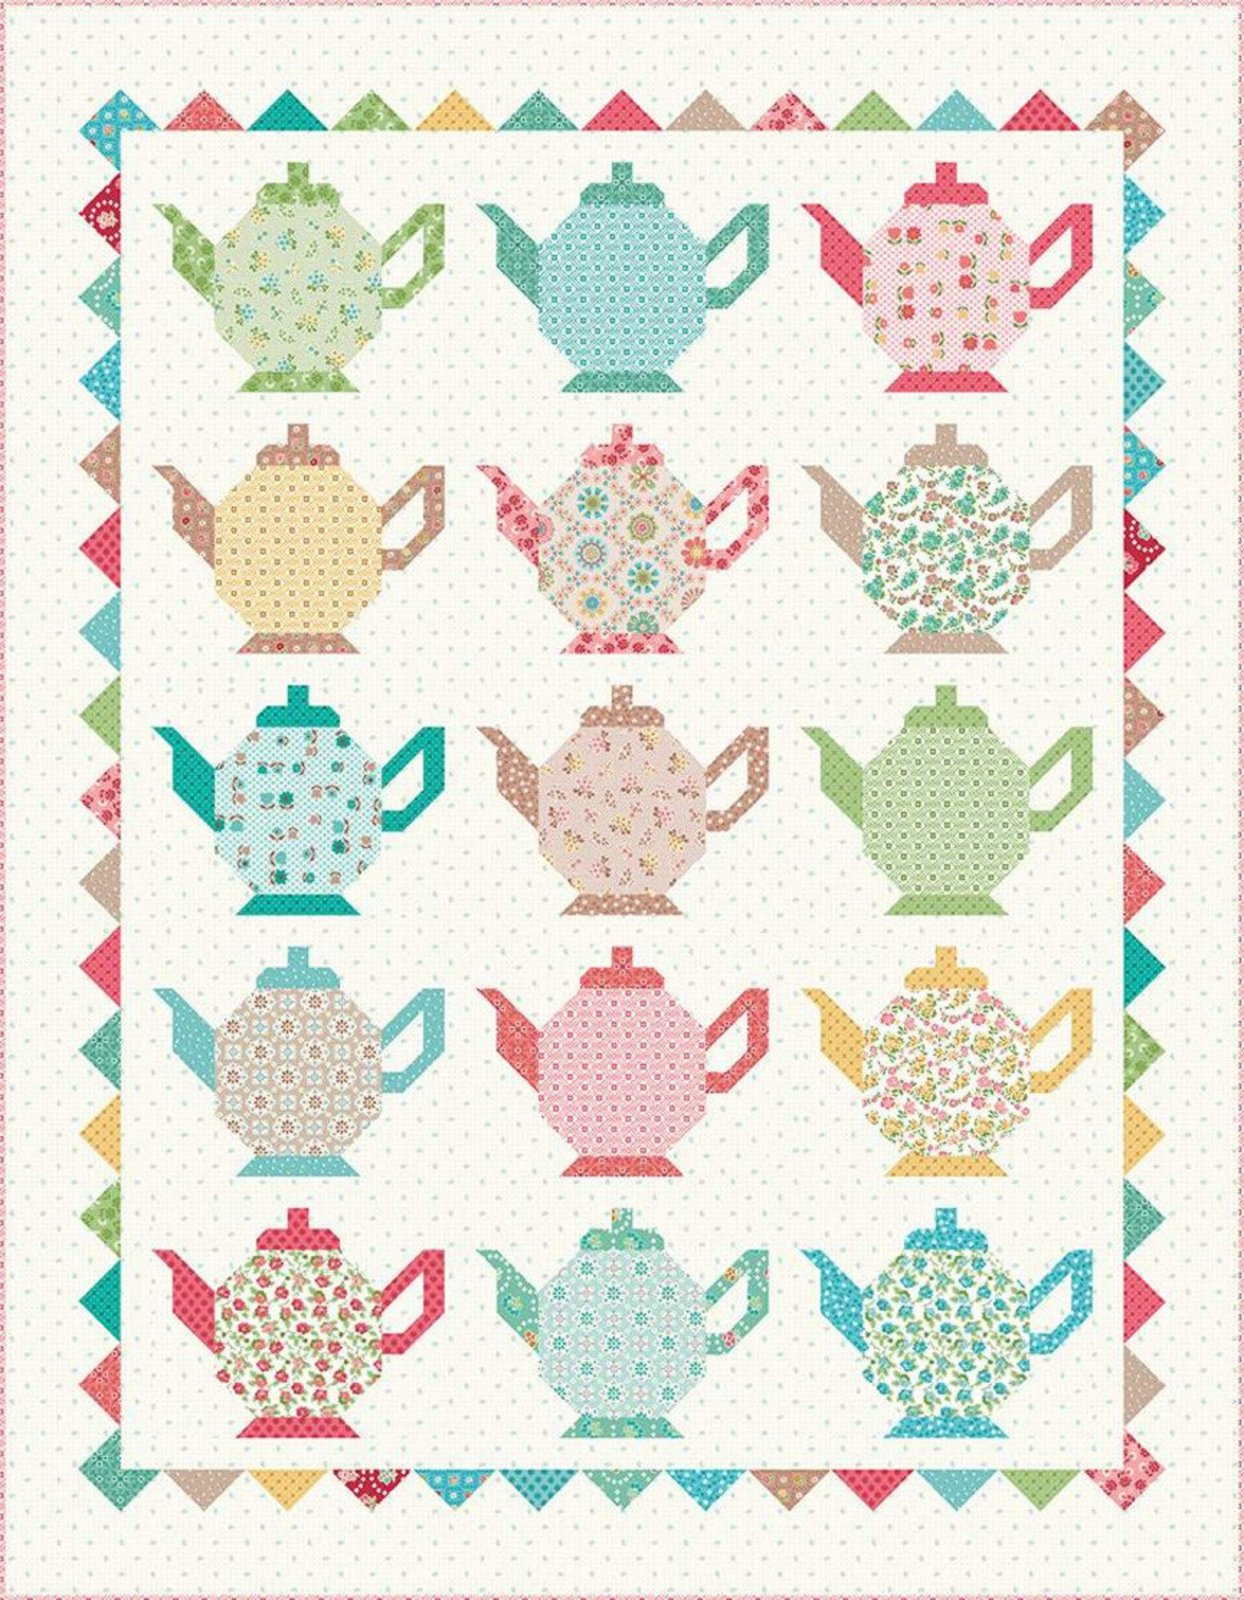 Teapot Quilt Kit by Lori Holt of Bee in my Bonnet for Riley Blake